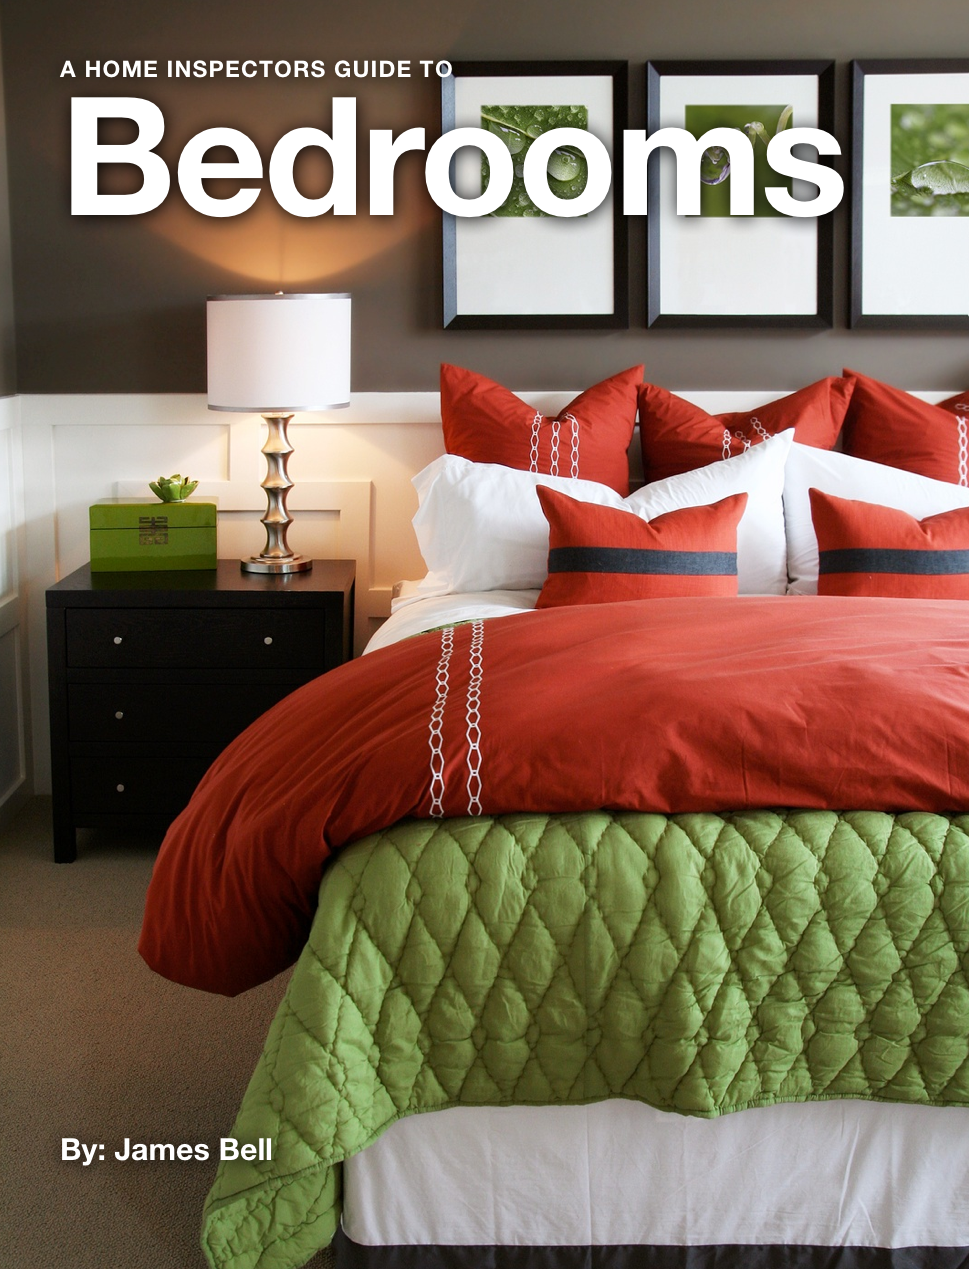 A Home Inspectors Guide to Bedrooms